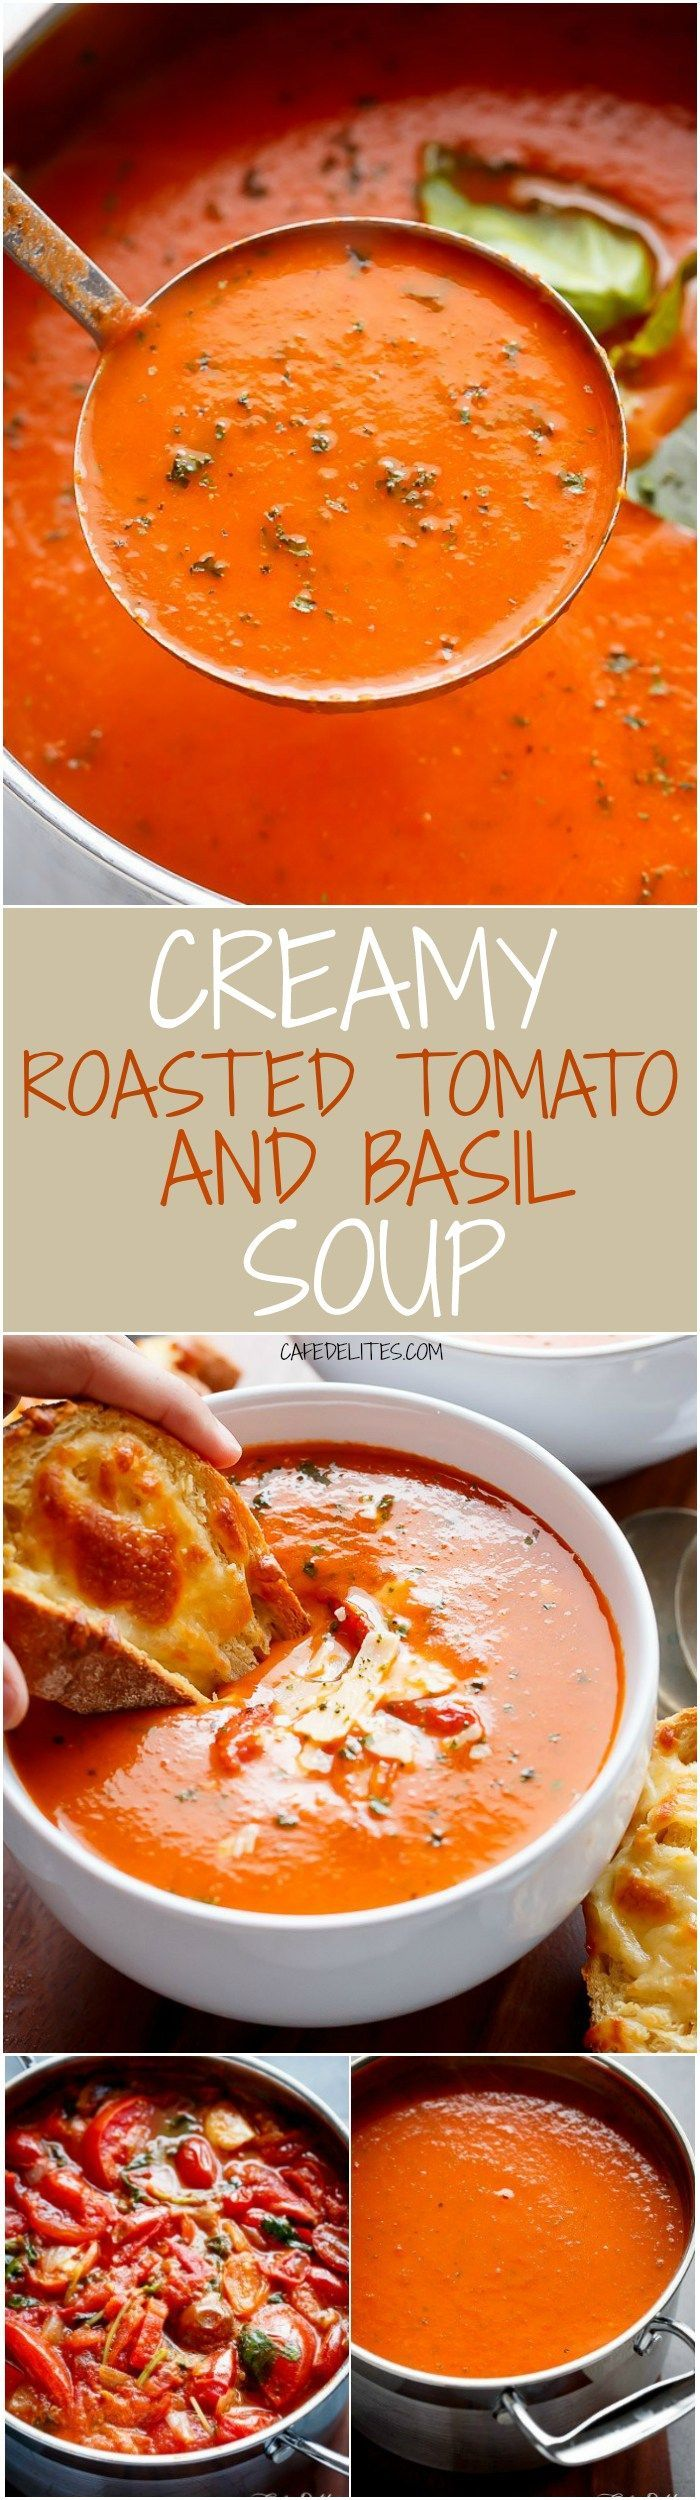 An easy and creamy roasted Tomato Basil Soup full of incredible flavours, naturally thickened with no need for cream cheese or heavy creams! |